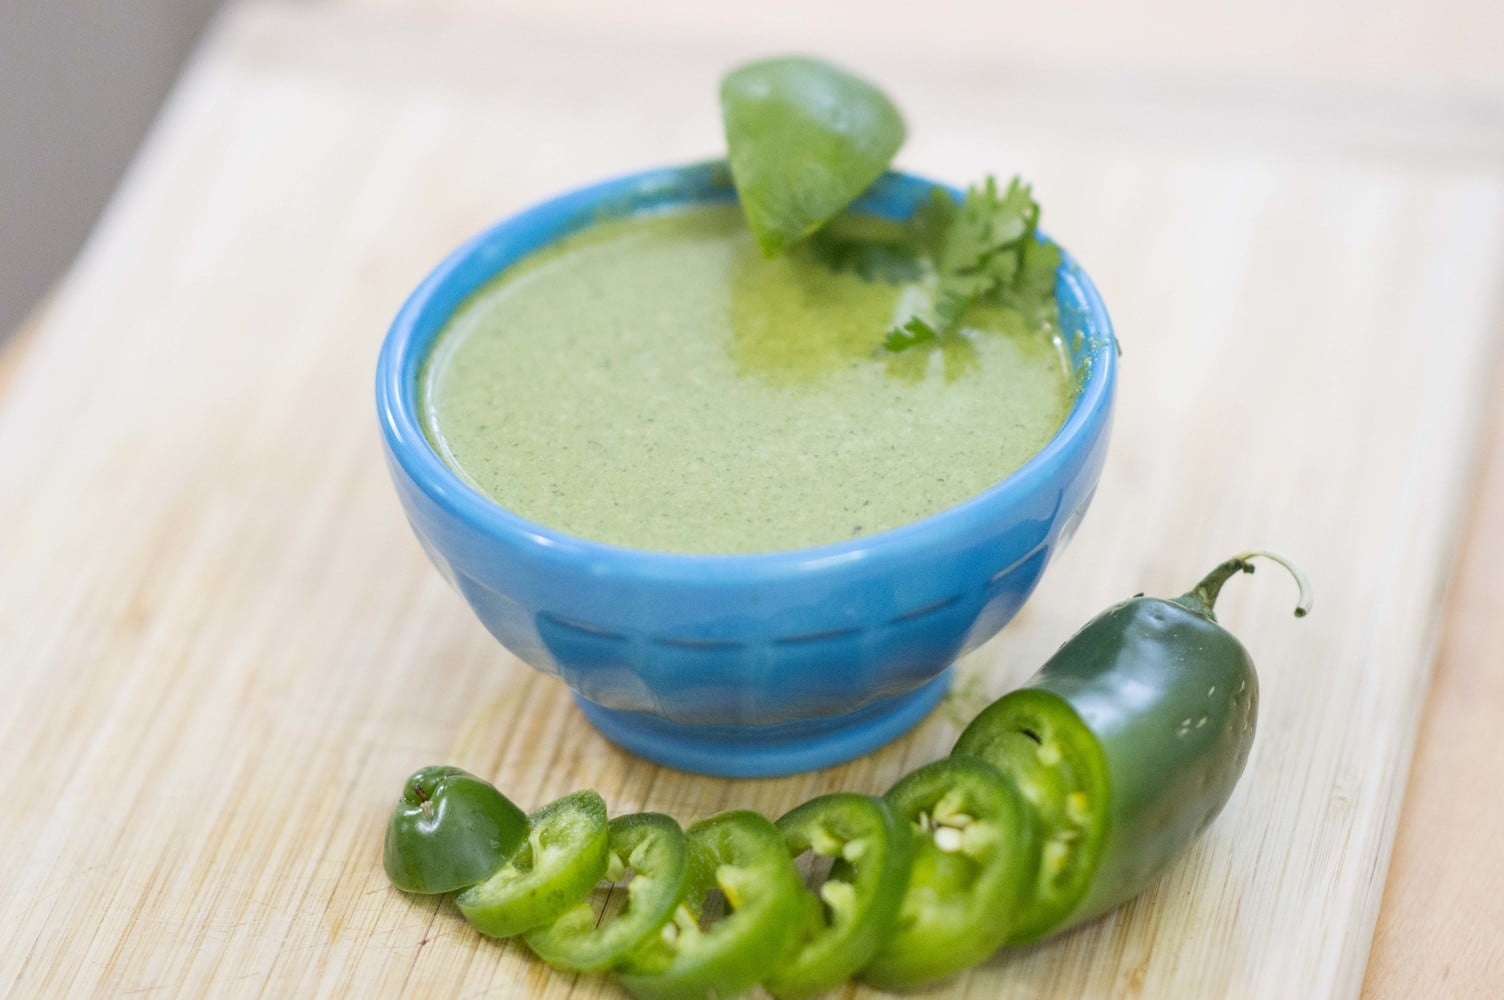 The Jalapeno Lime Vinaigrette dished up and ready to add to your favorite salad